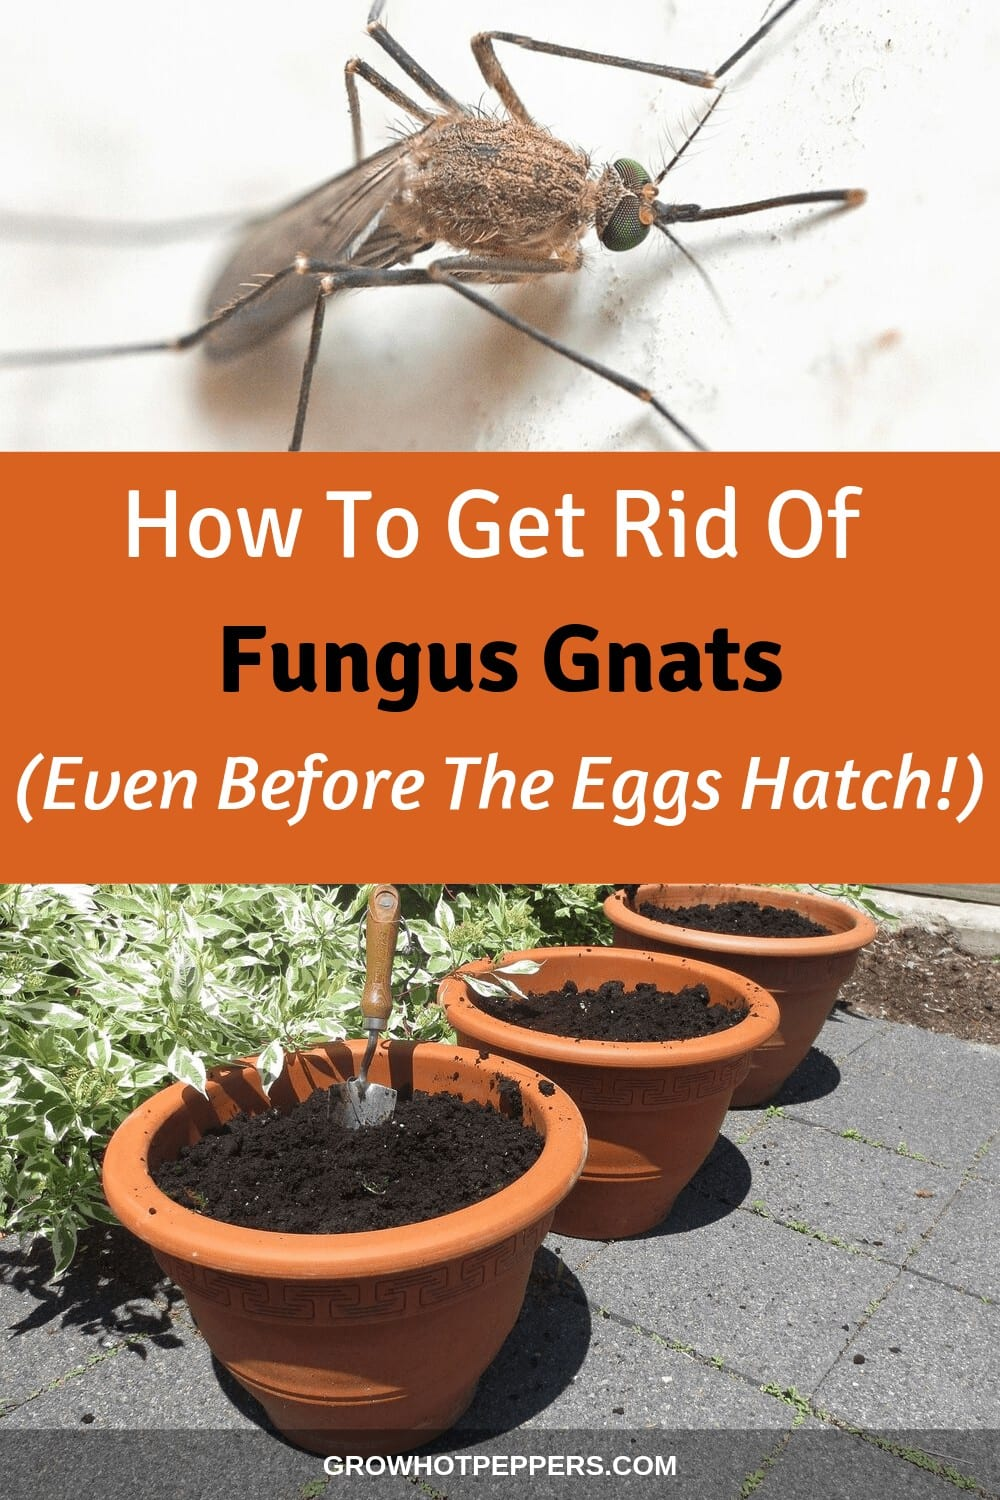 How to Get Rid of Fungus Gnats on Indoor & Outdoor Plants